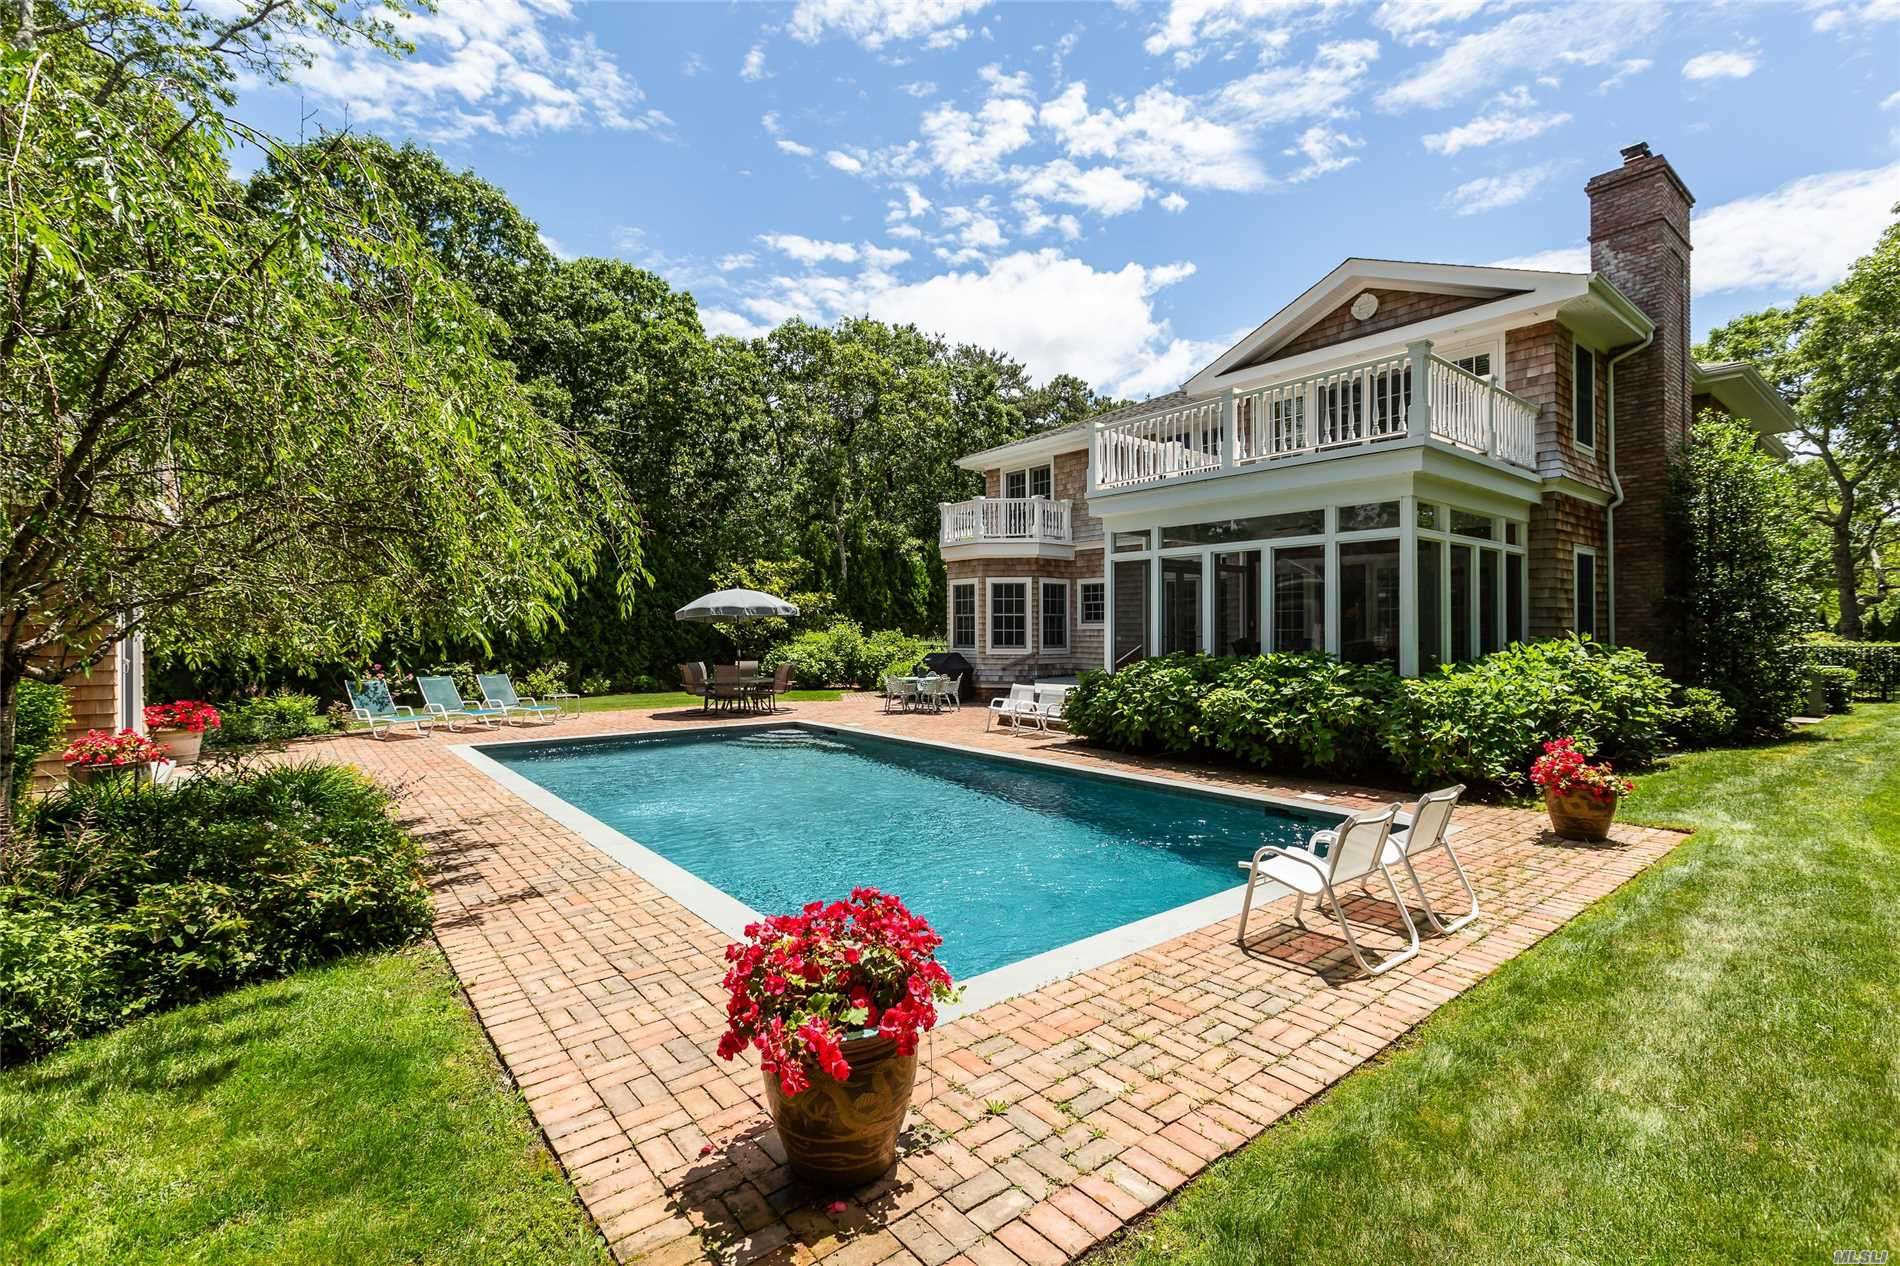 Photo of home for sale at 28 Howell Ln, Westhampton Bch NY